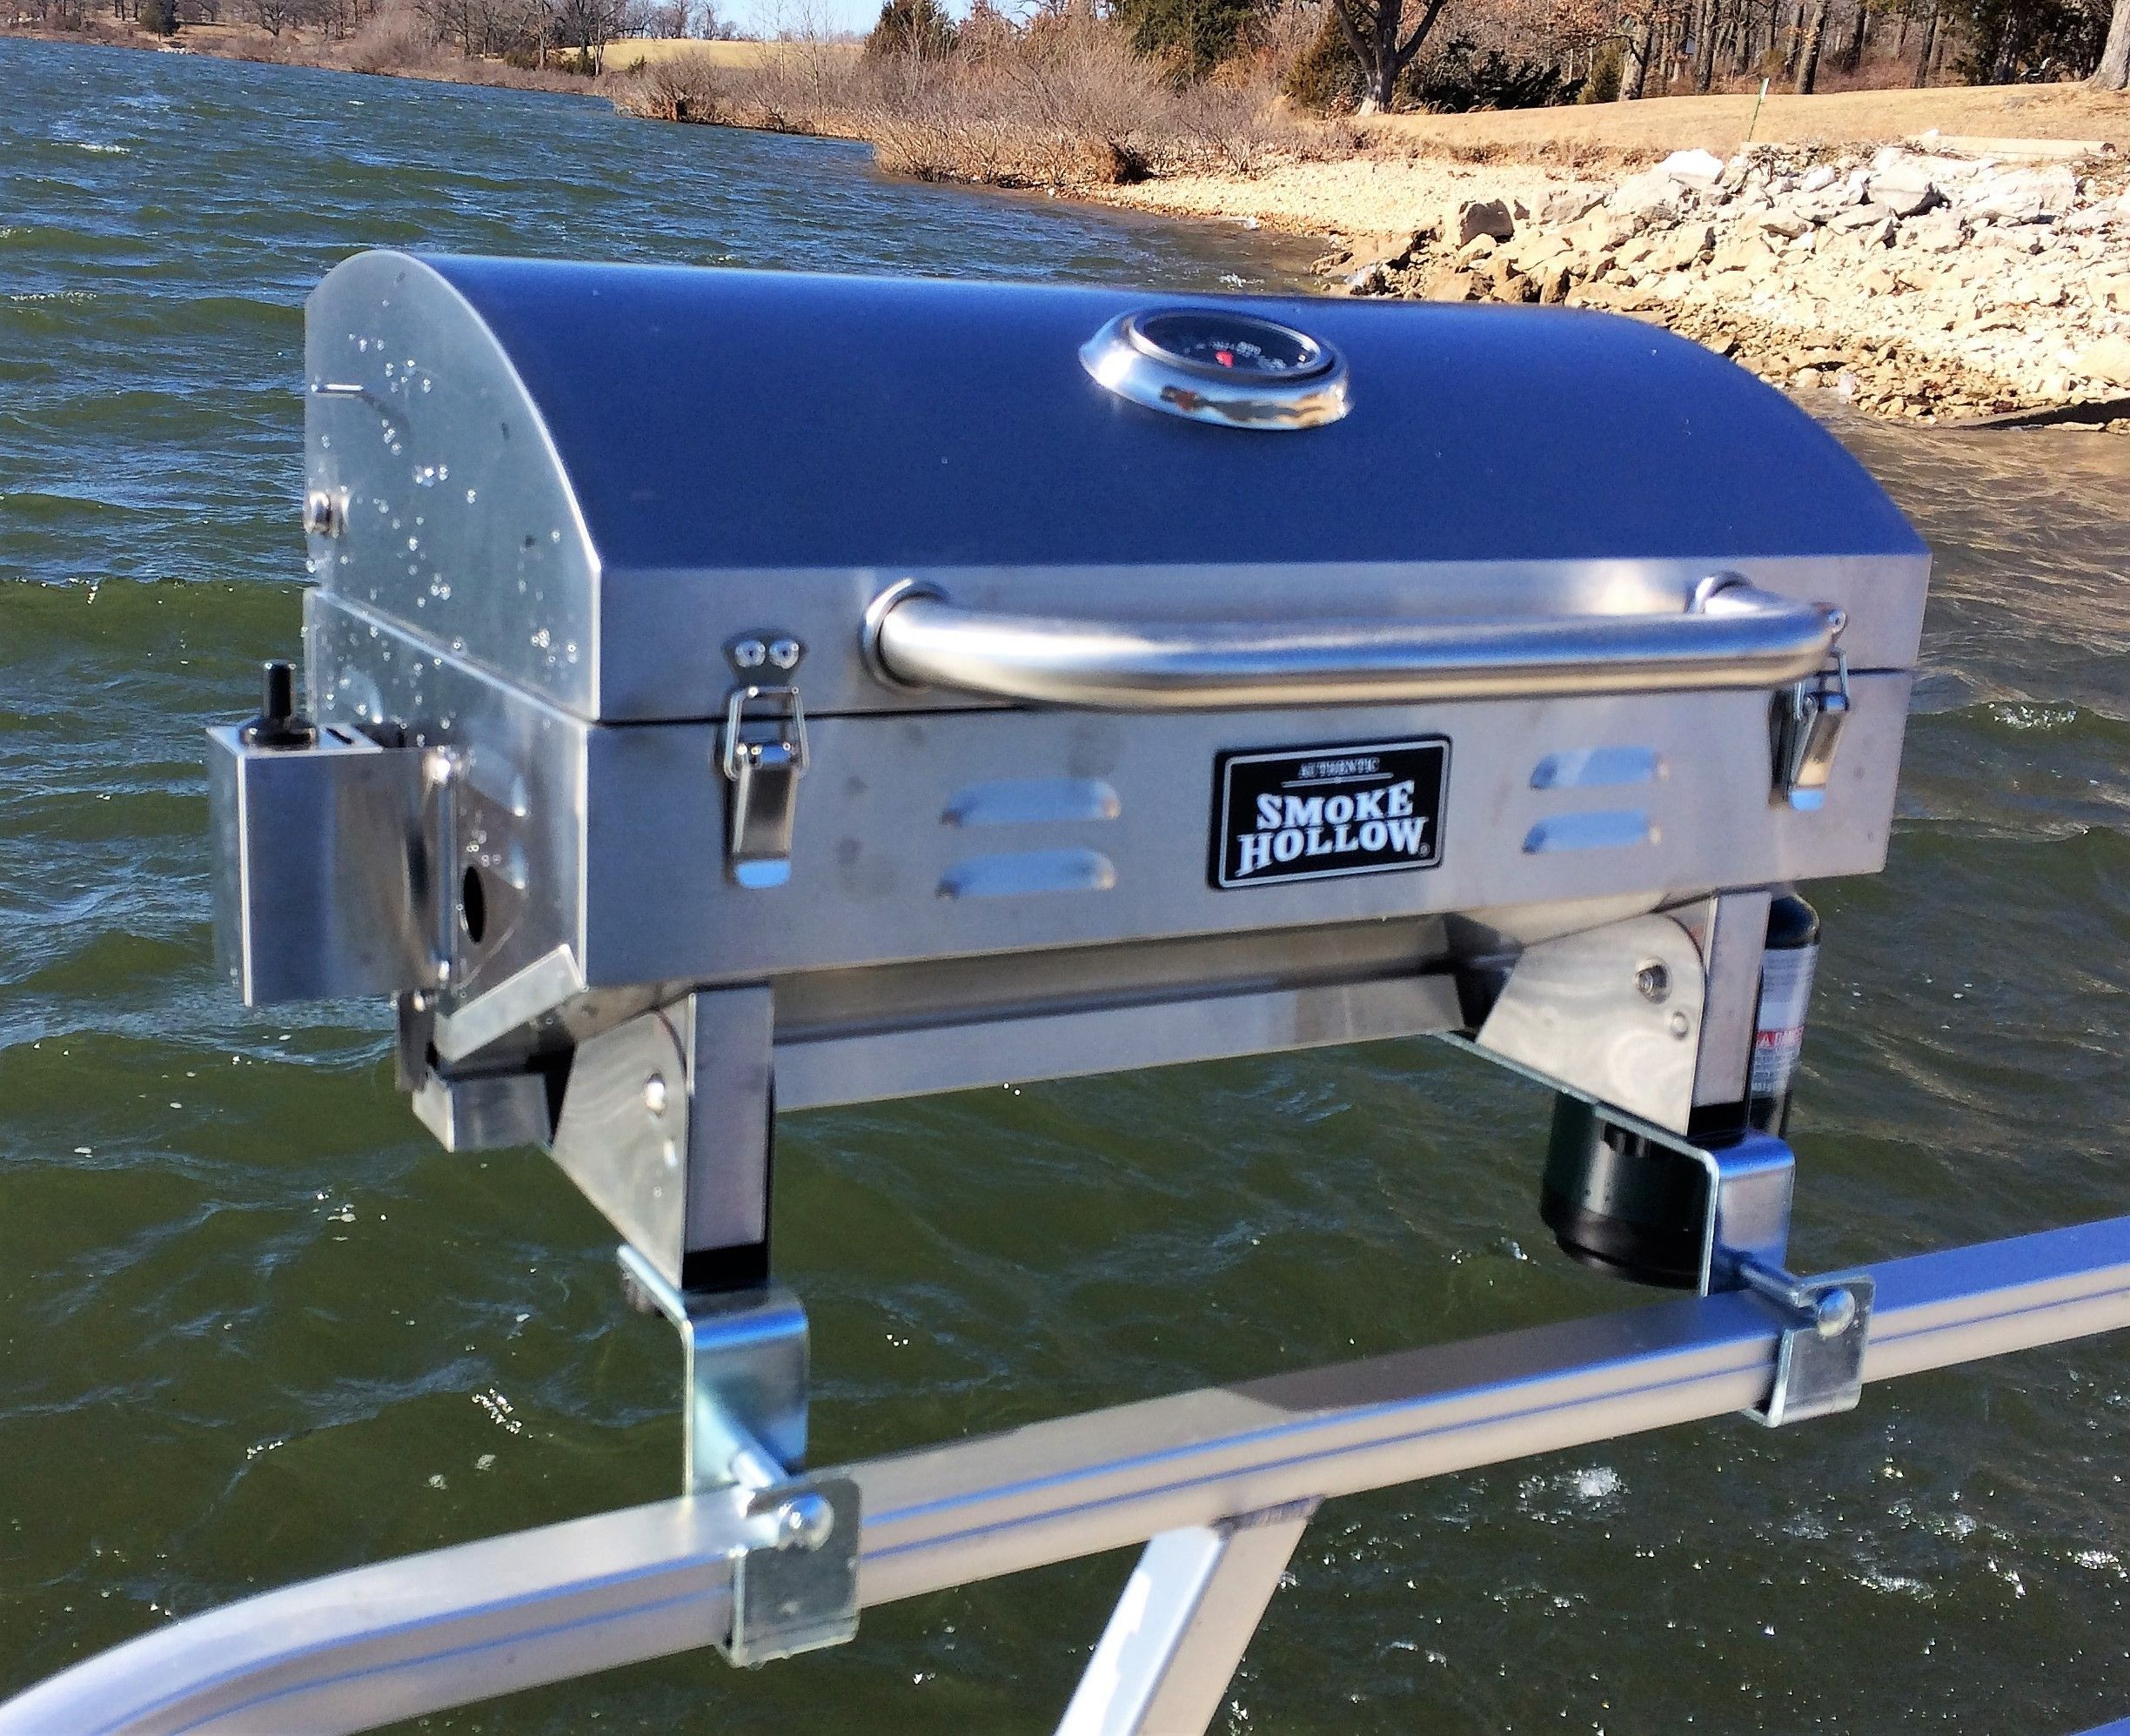 Stainless Steel Smoke Hollow Grill With Pontoon Rail